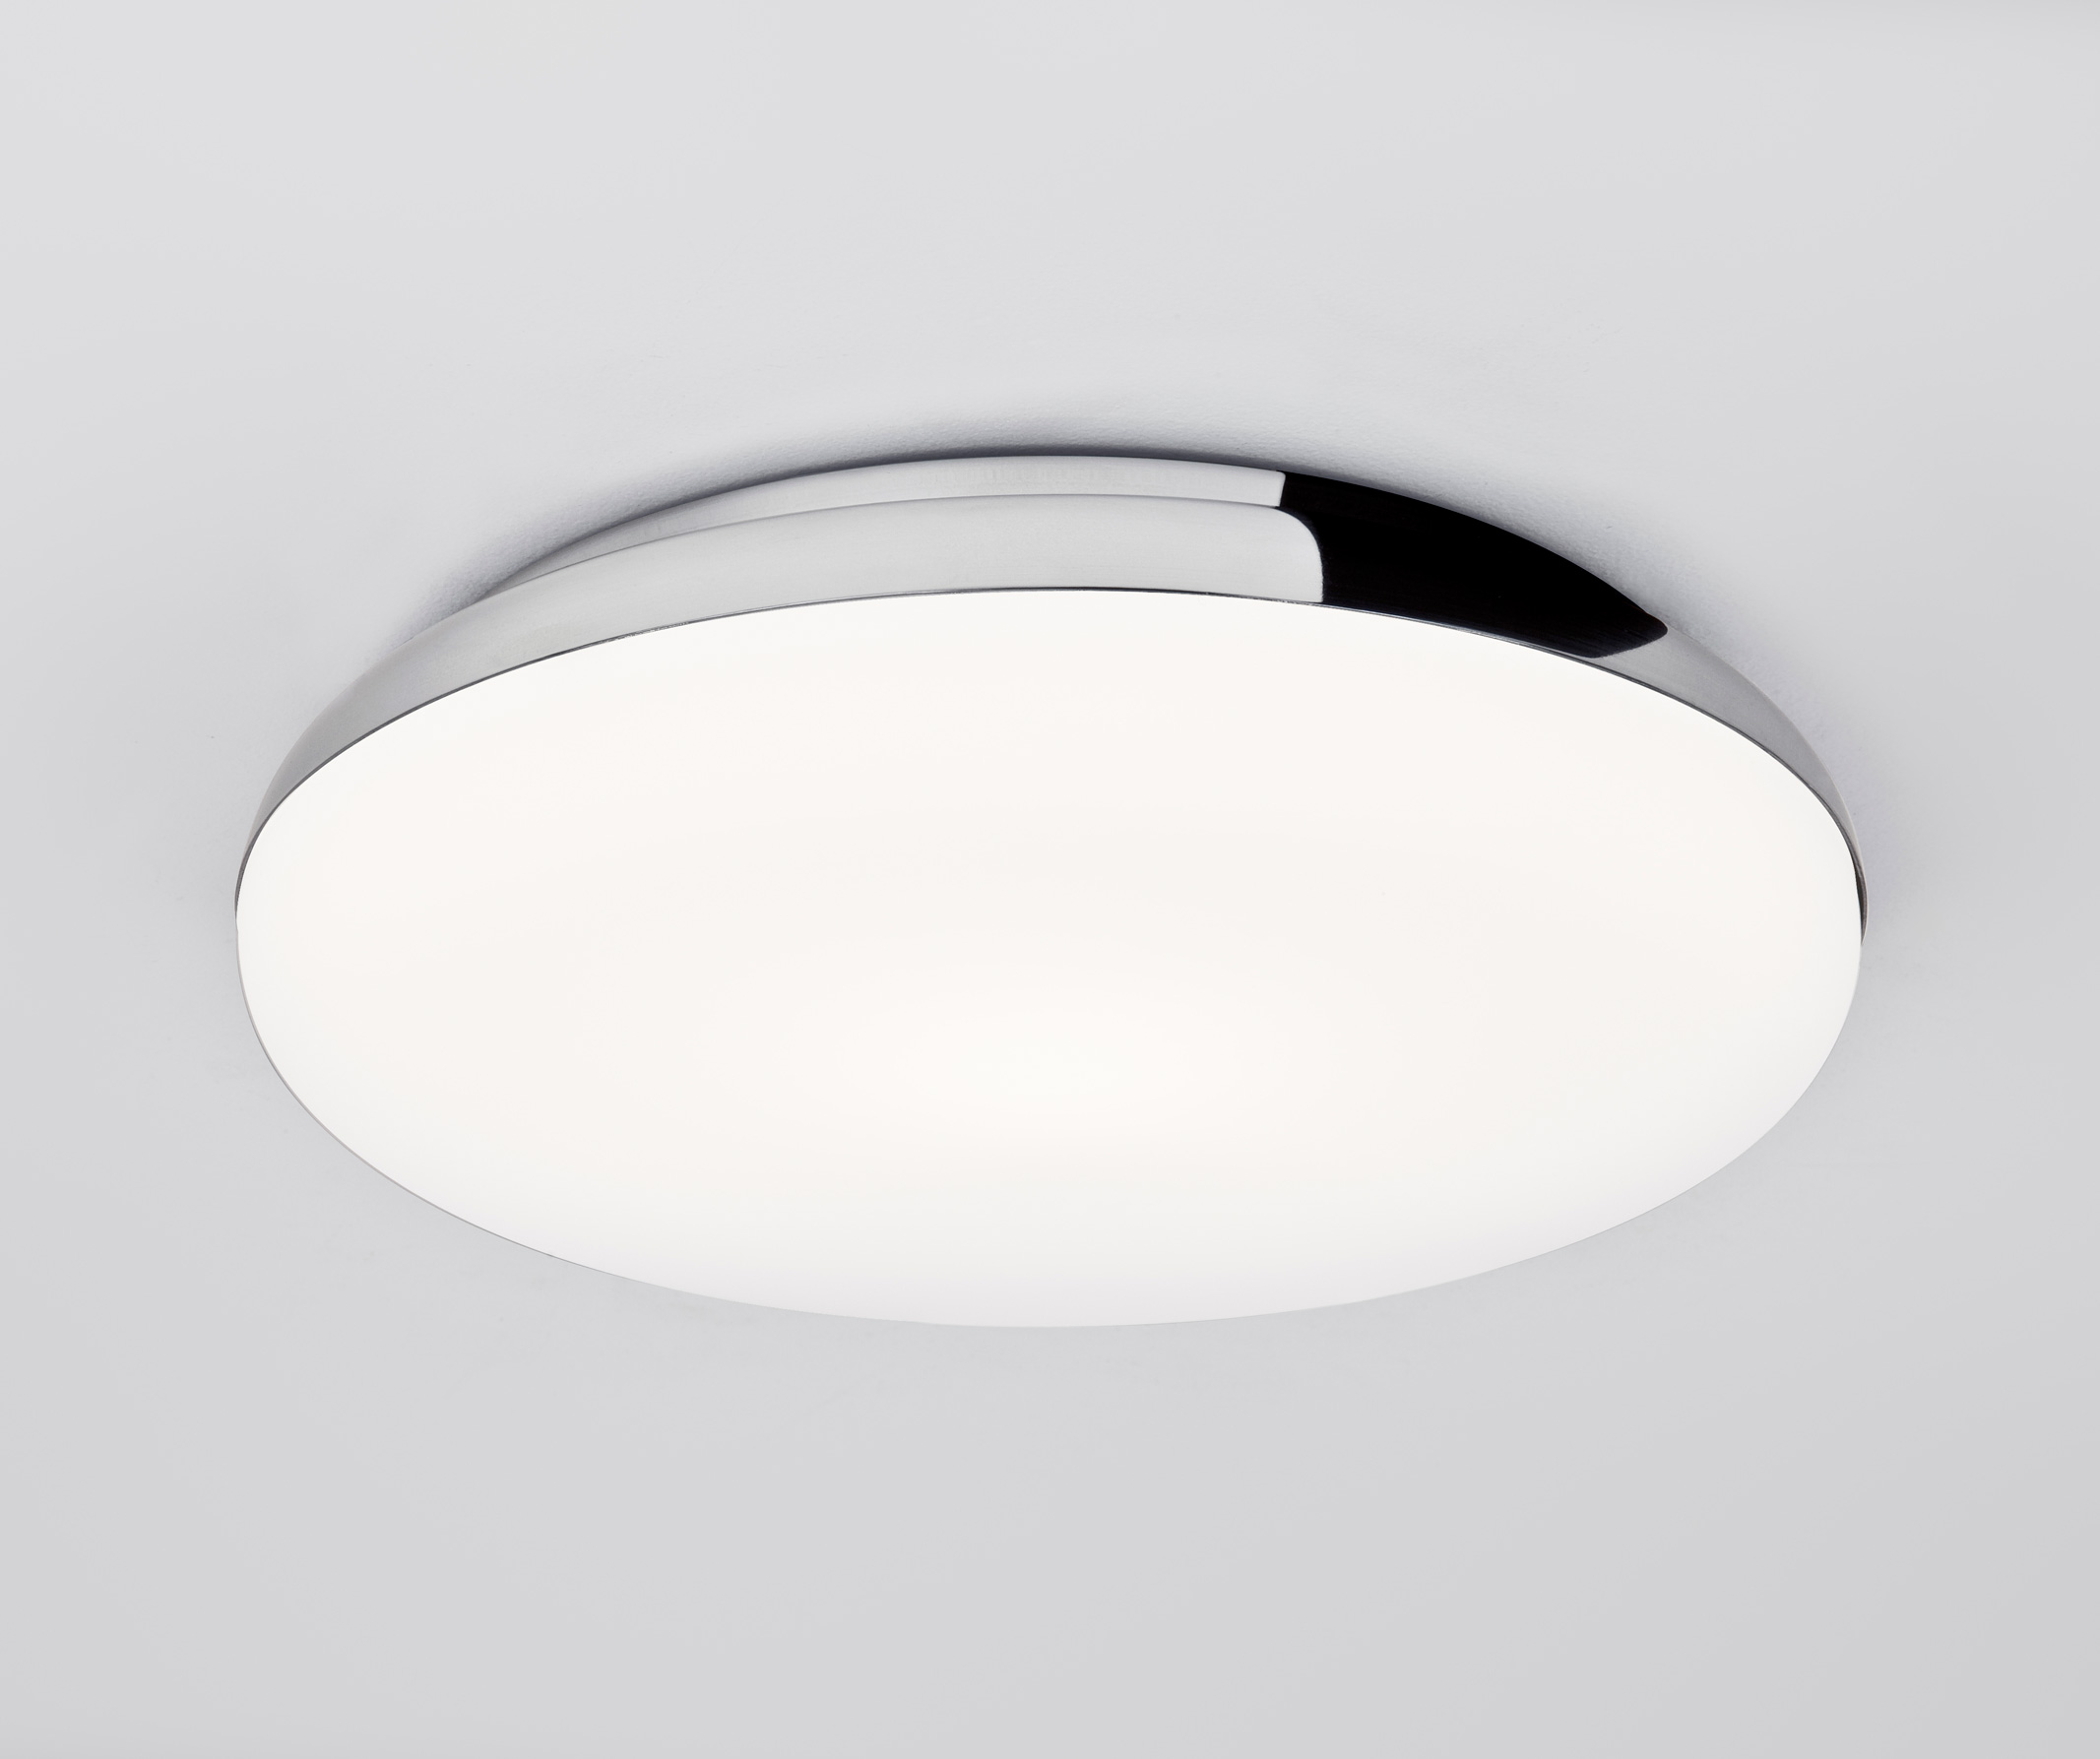 Astro Altea Bathroom 0586 round glass bathroom ceiling light 60W E27 IP44 chrome